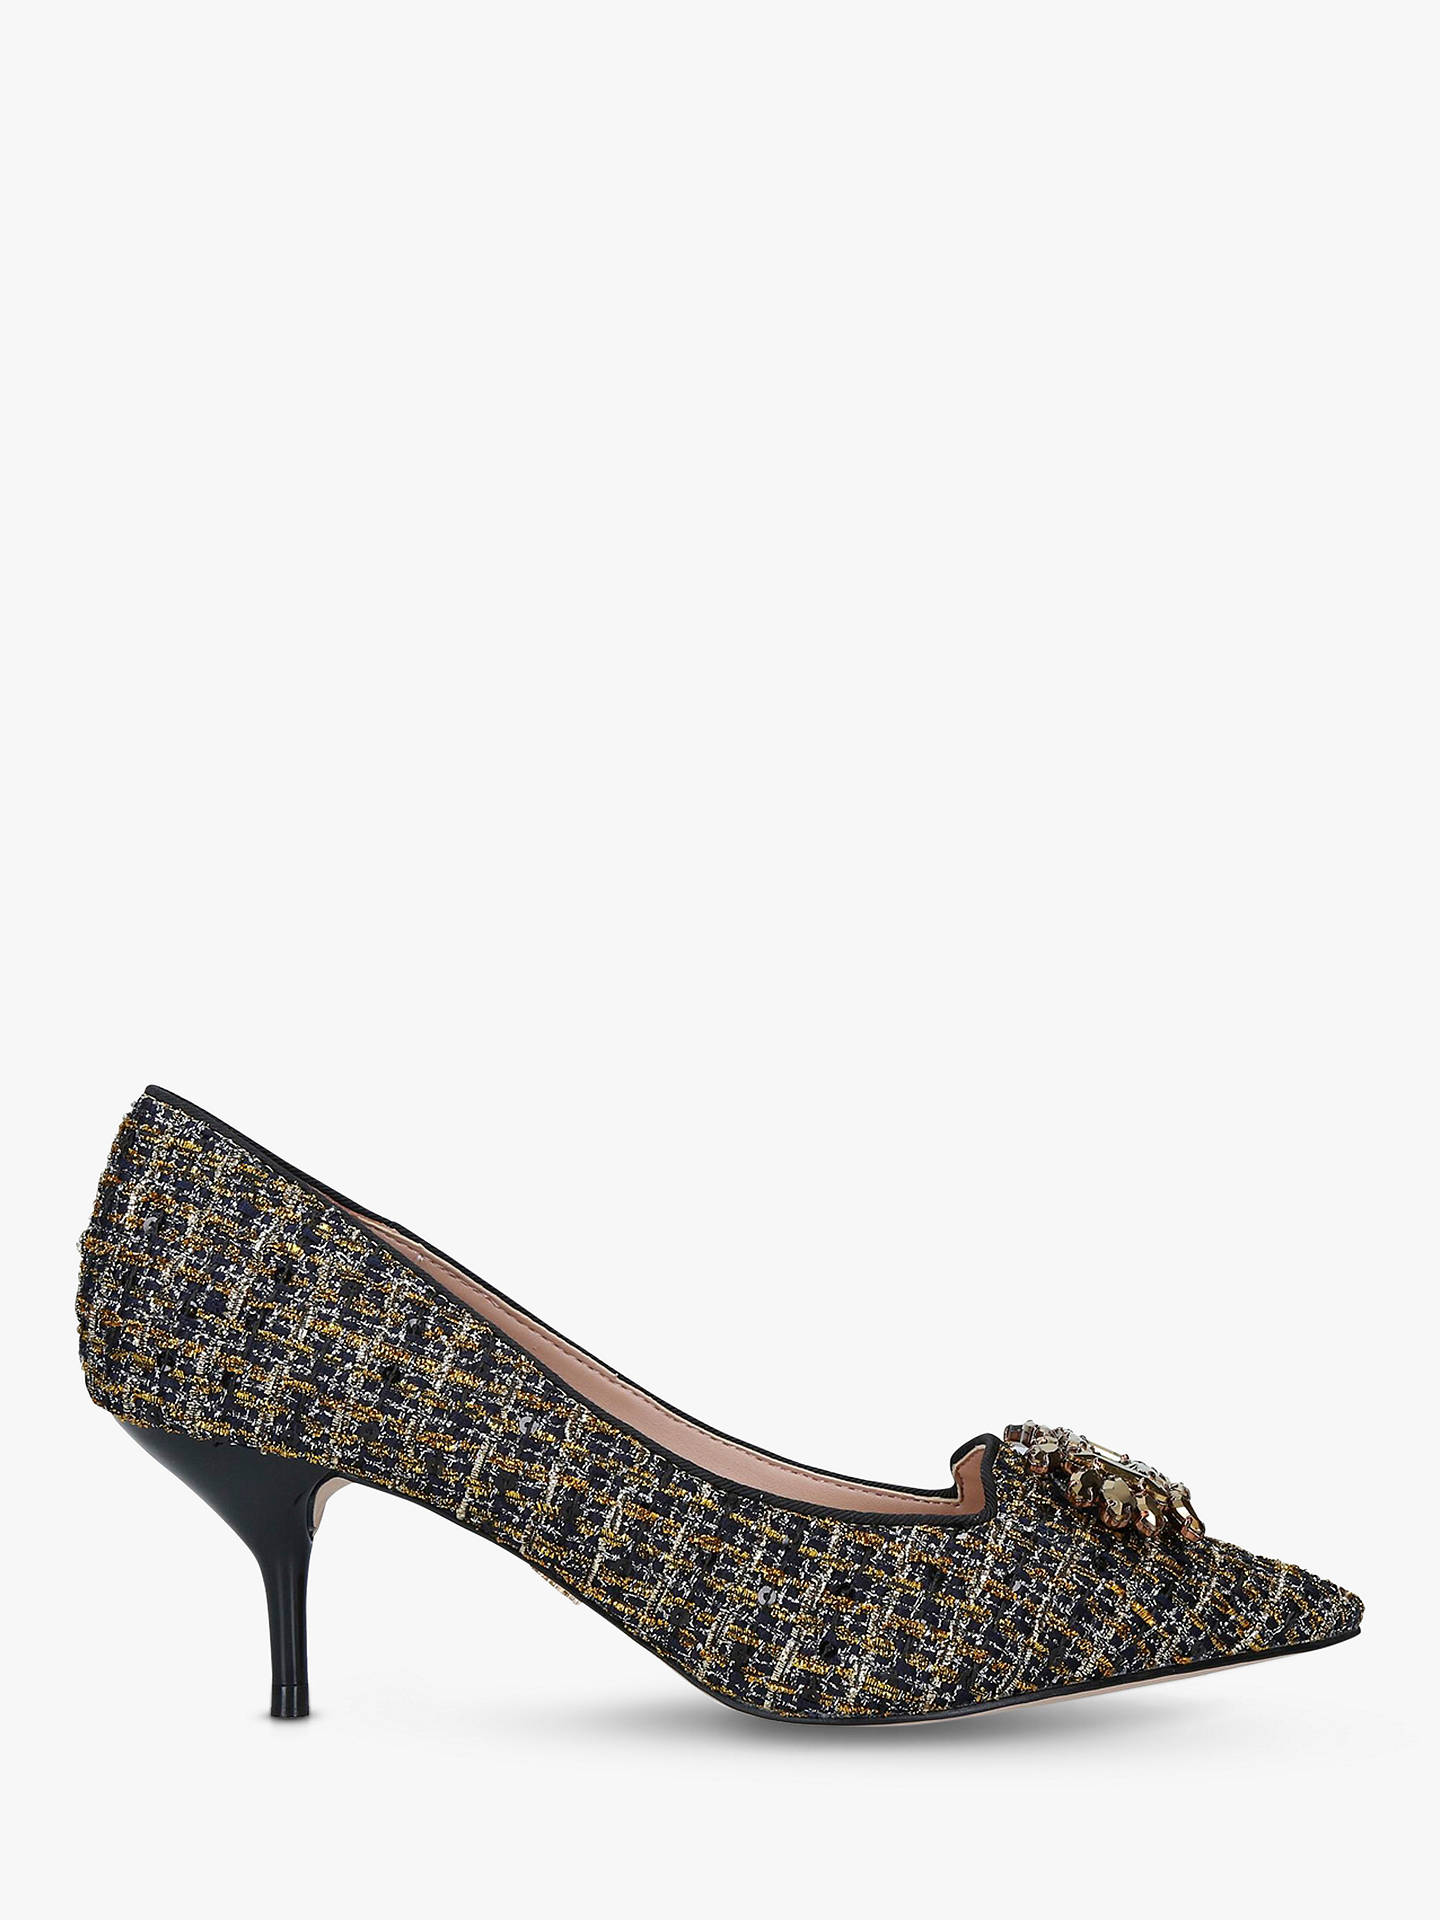 100% high quality hot sales best shoes Kurt Geiger London Pia Jewel Tweed Mid Heel Court Shoes, Black/Gold